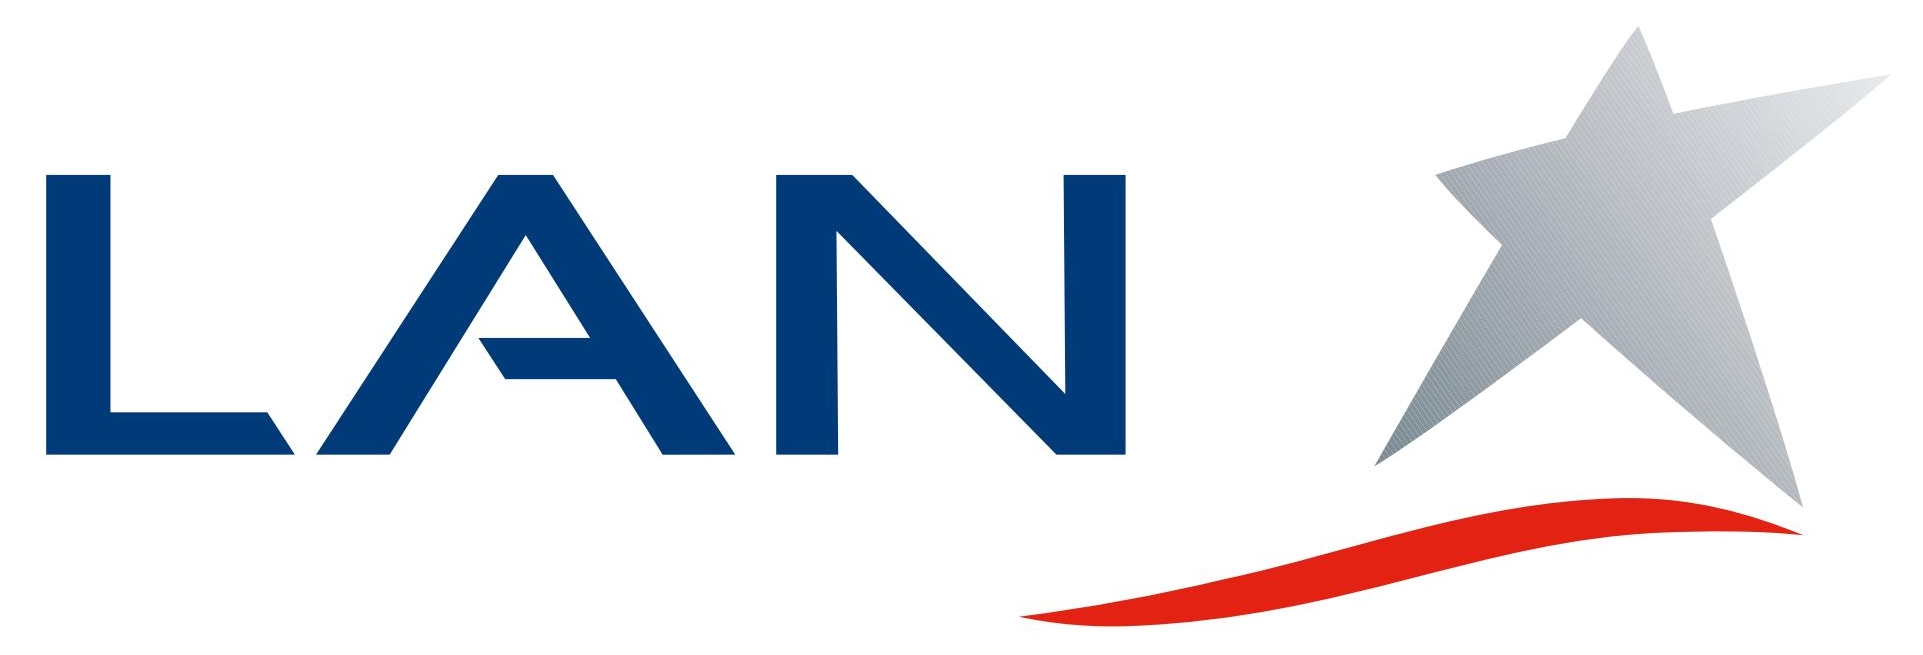 LAN Airlines Logo Vector EPS Free Download, Logo, Icons, Brand Emblems.